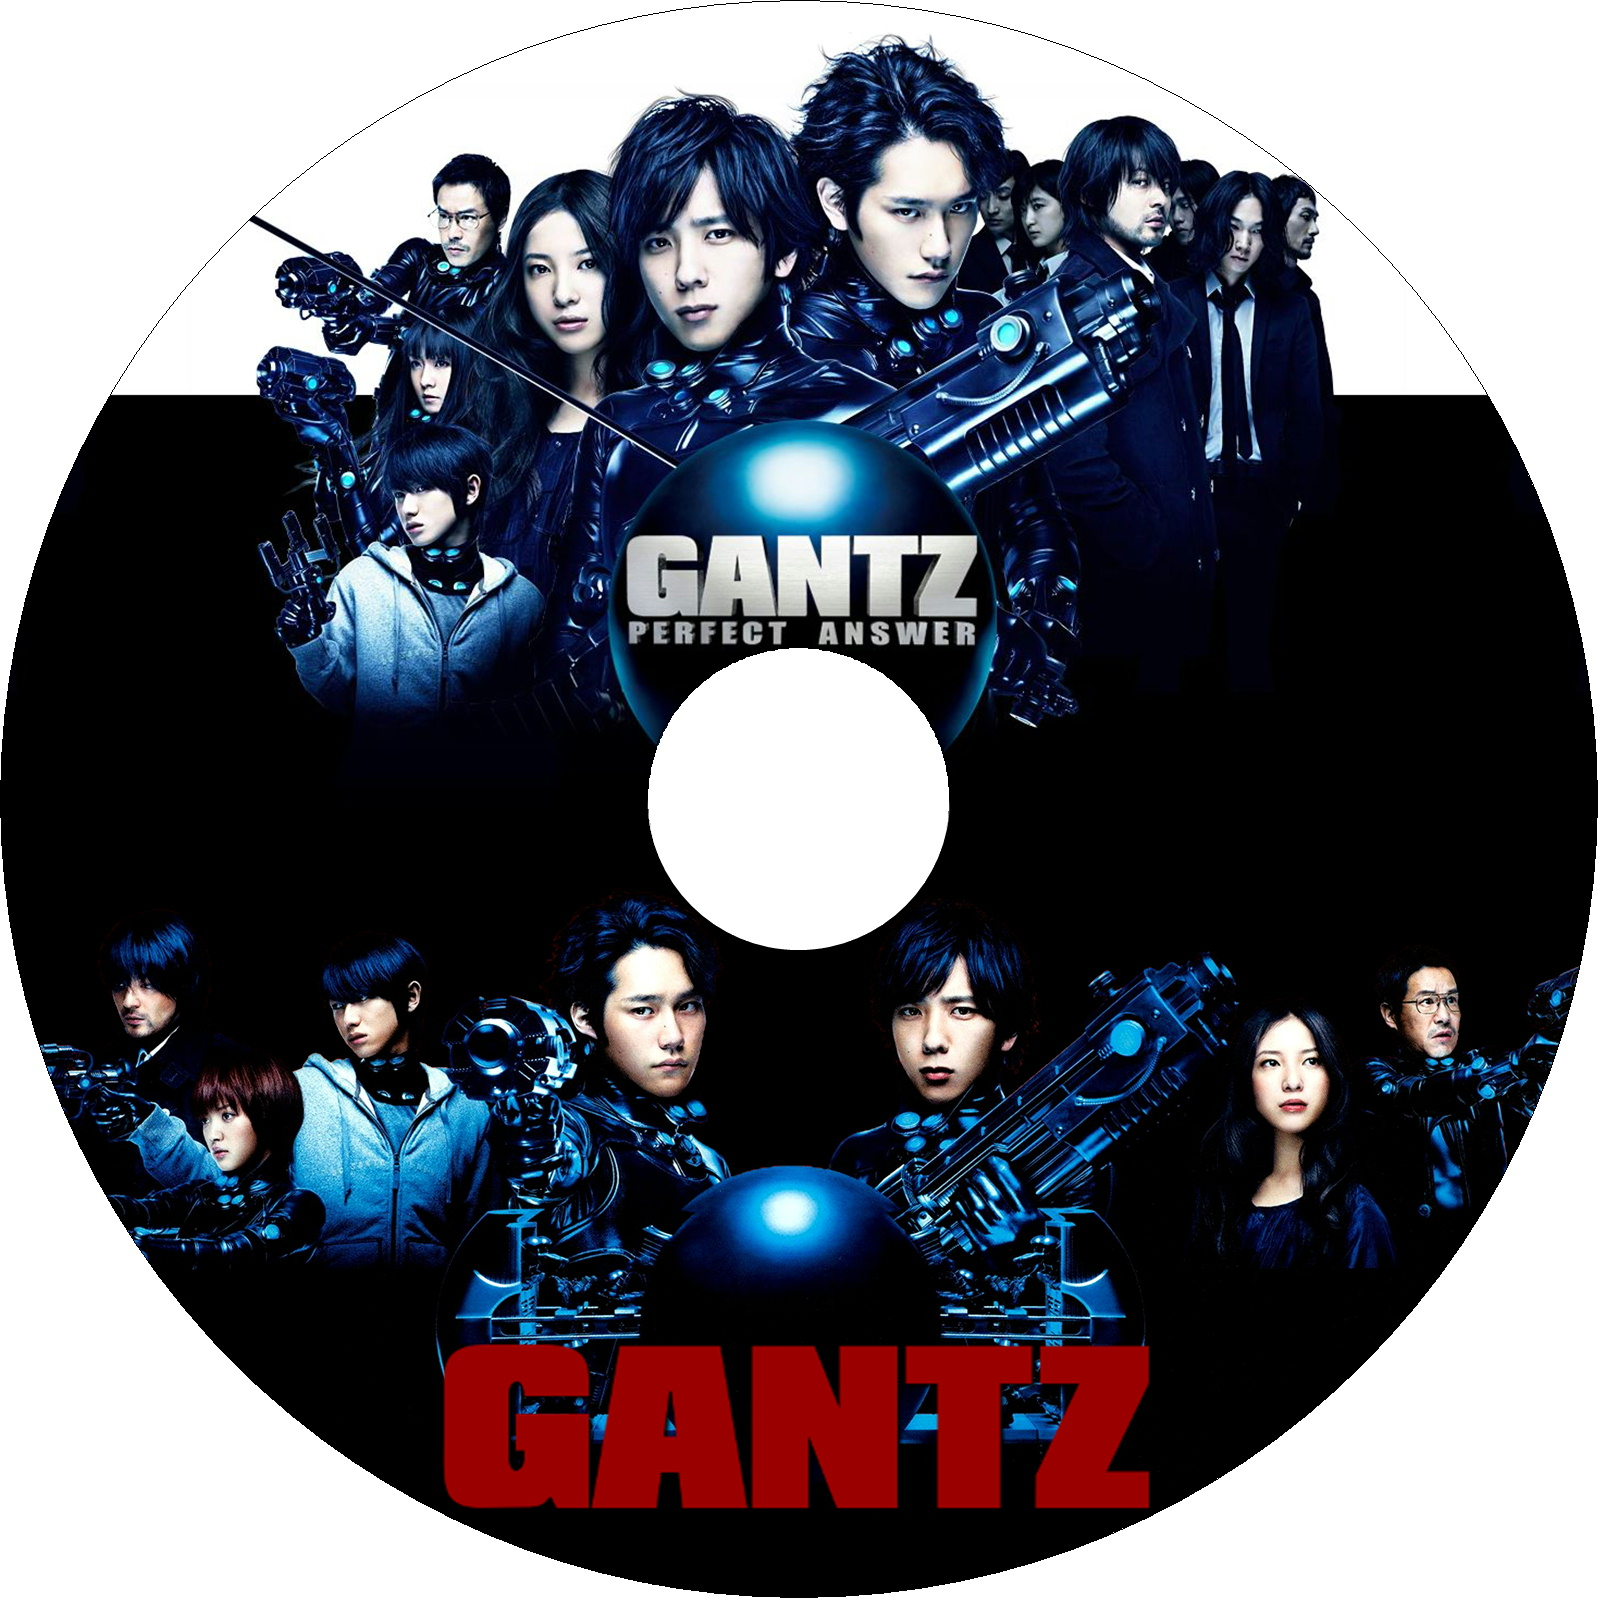 GANTZ&GANTZ PERFECT ANSWER ラベル